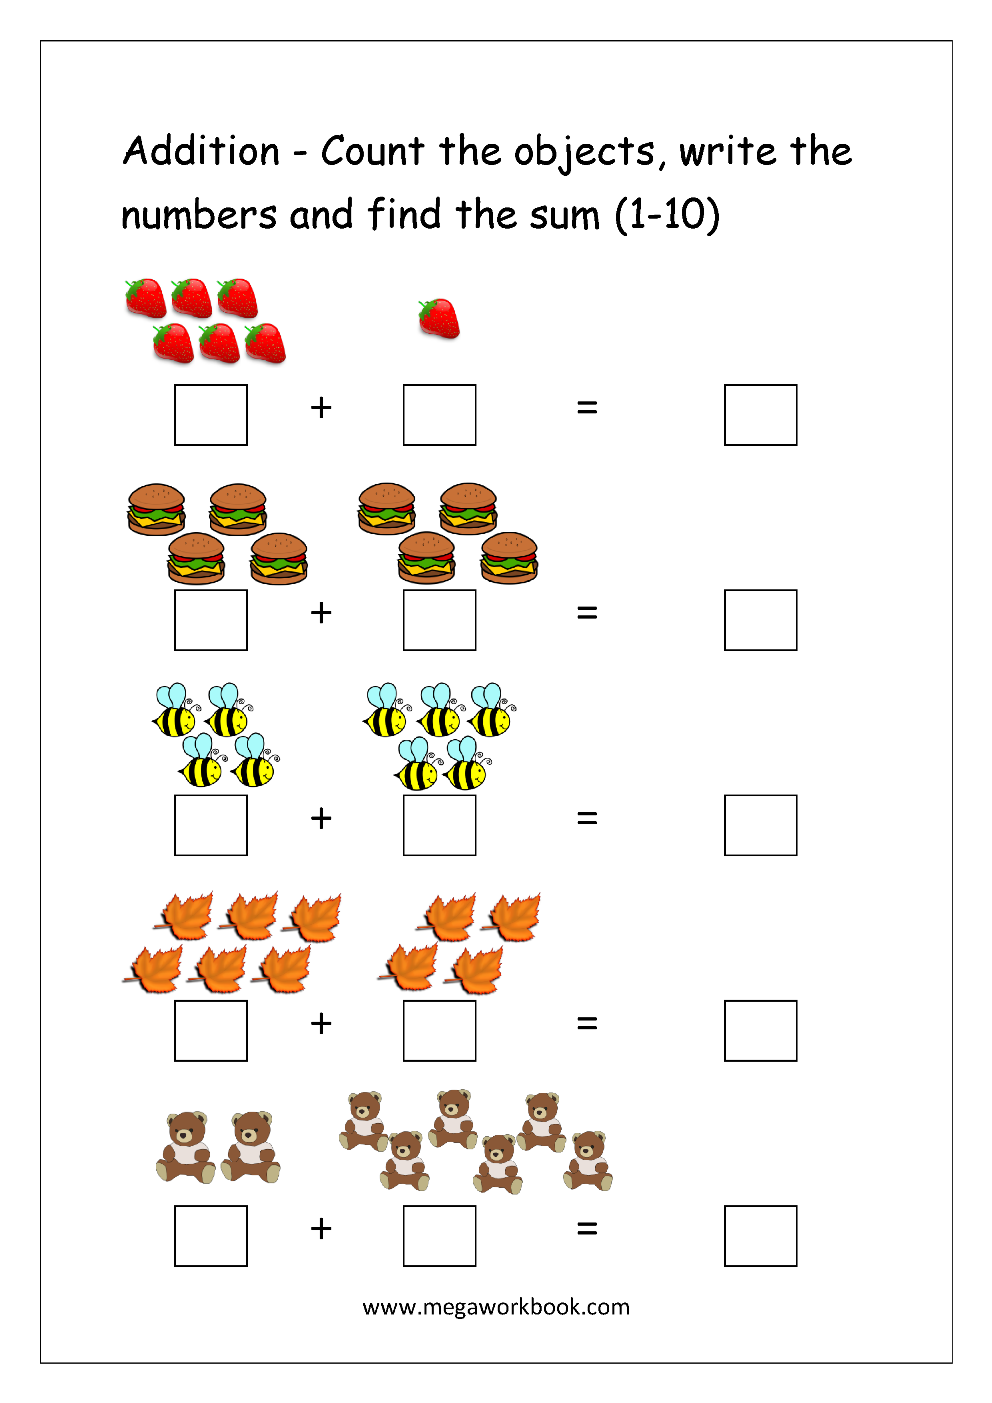 Free Math Worksheets - Number Addition - MegaWorkbook